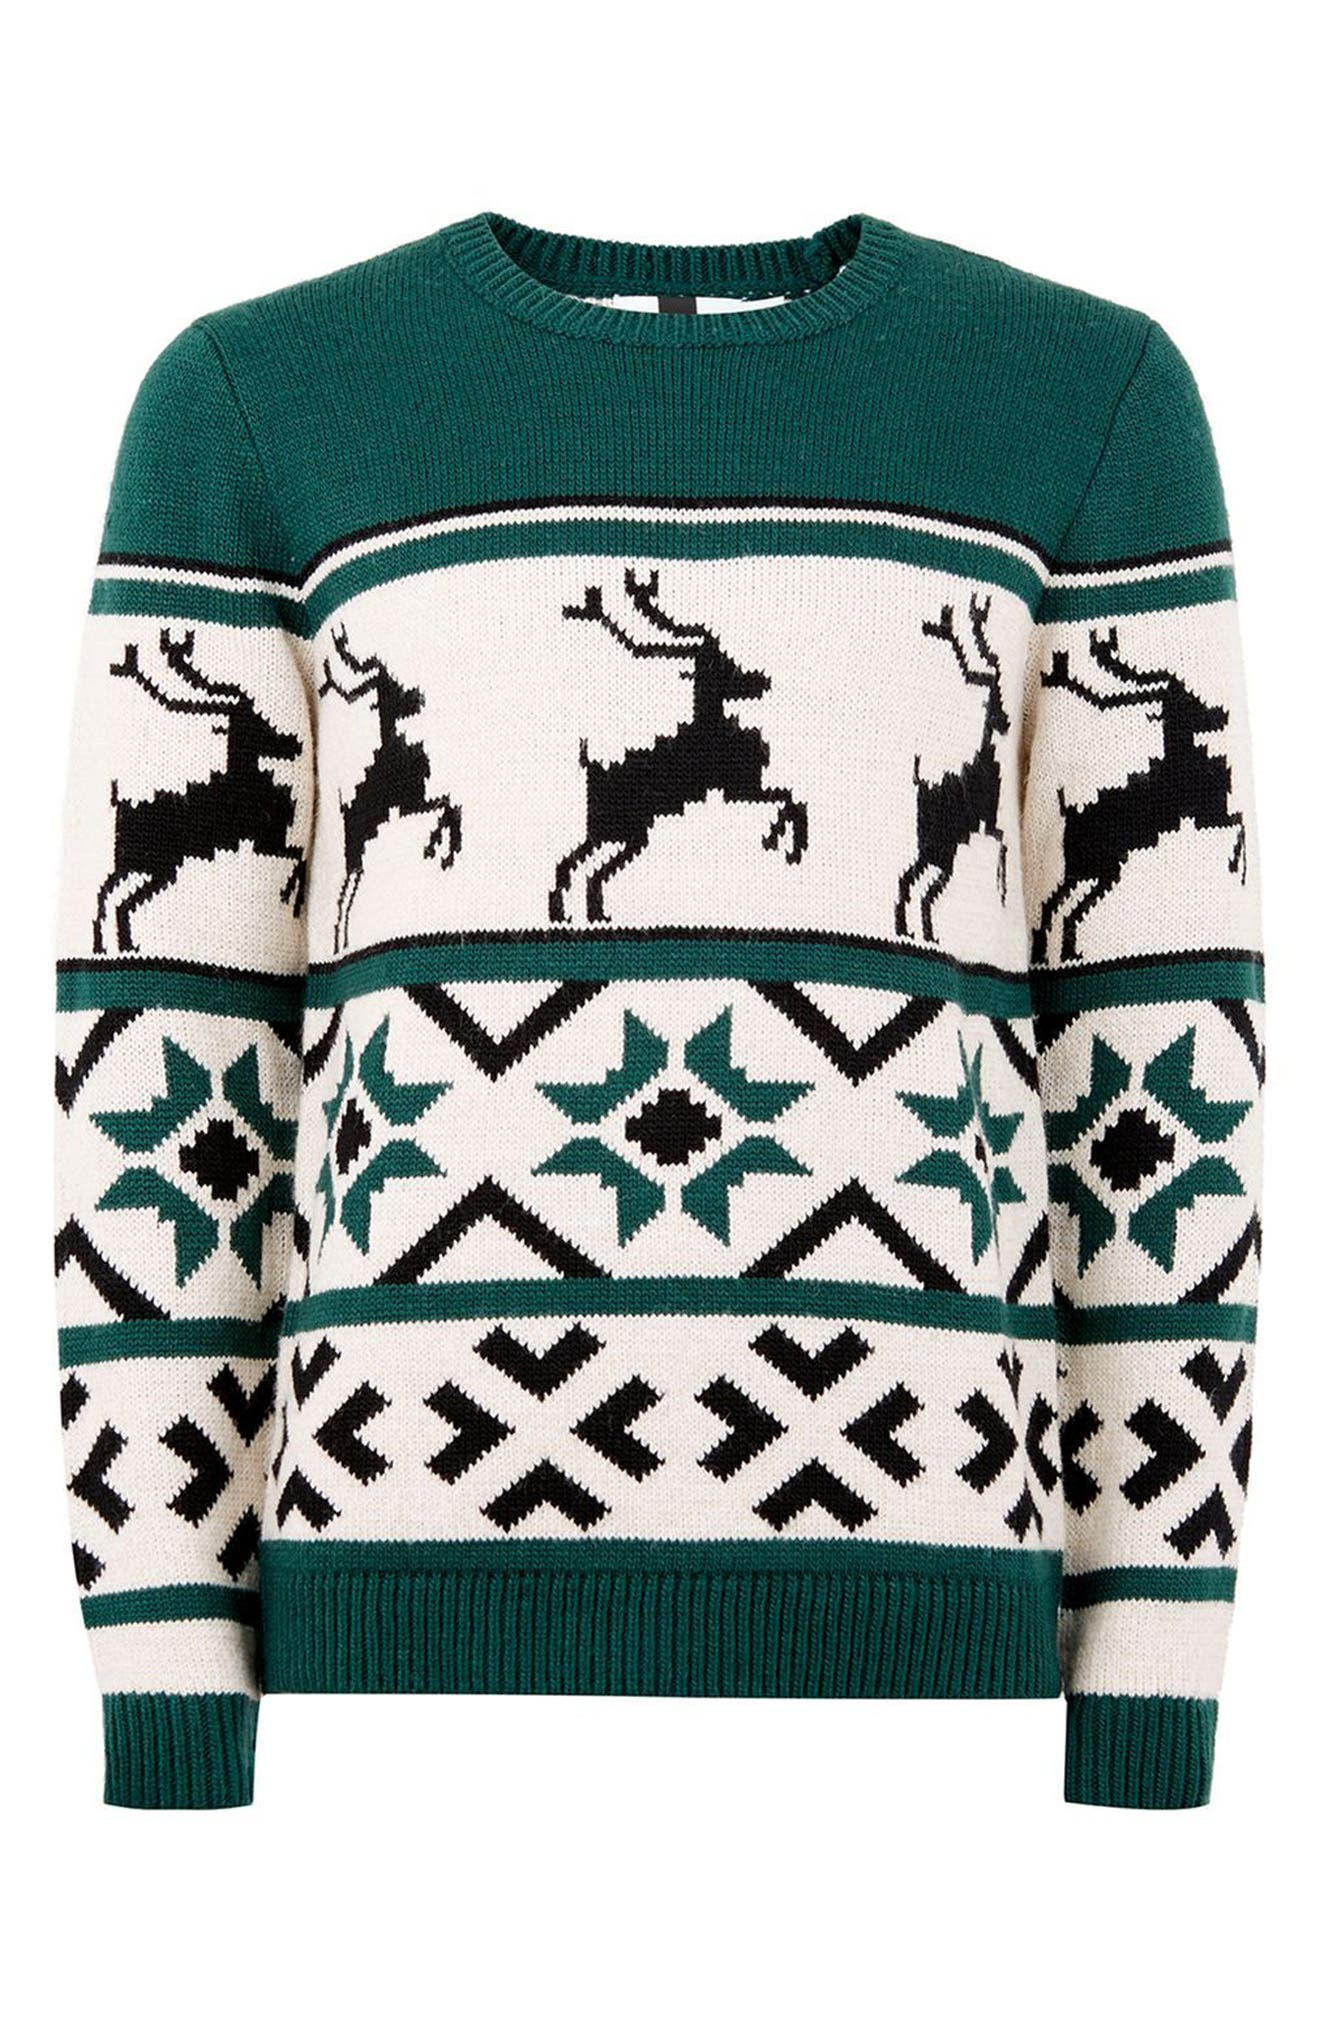 Fair Isle Reindeer Sweater,                             Alternate thumbnail 3, color,                             300